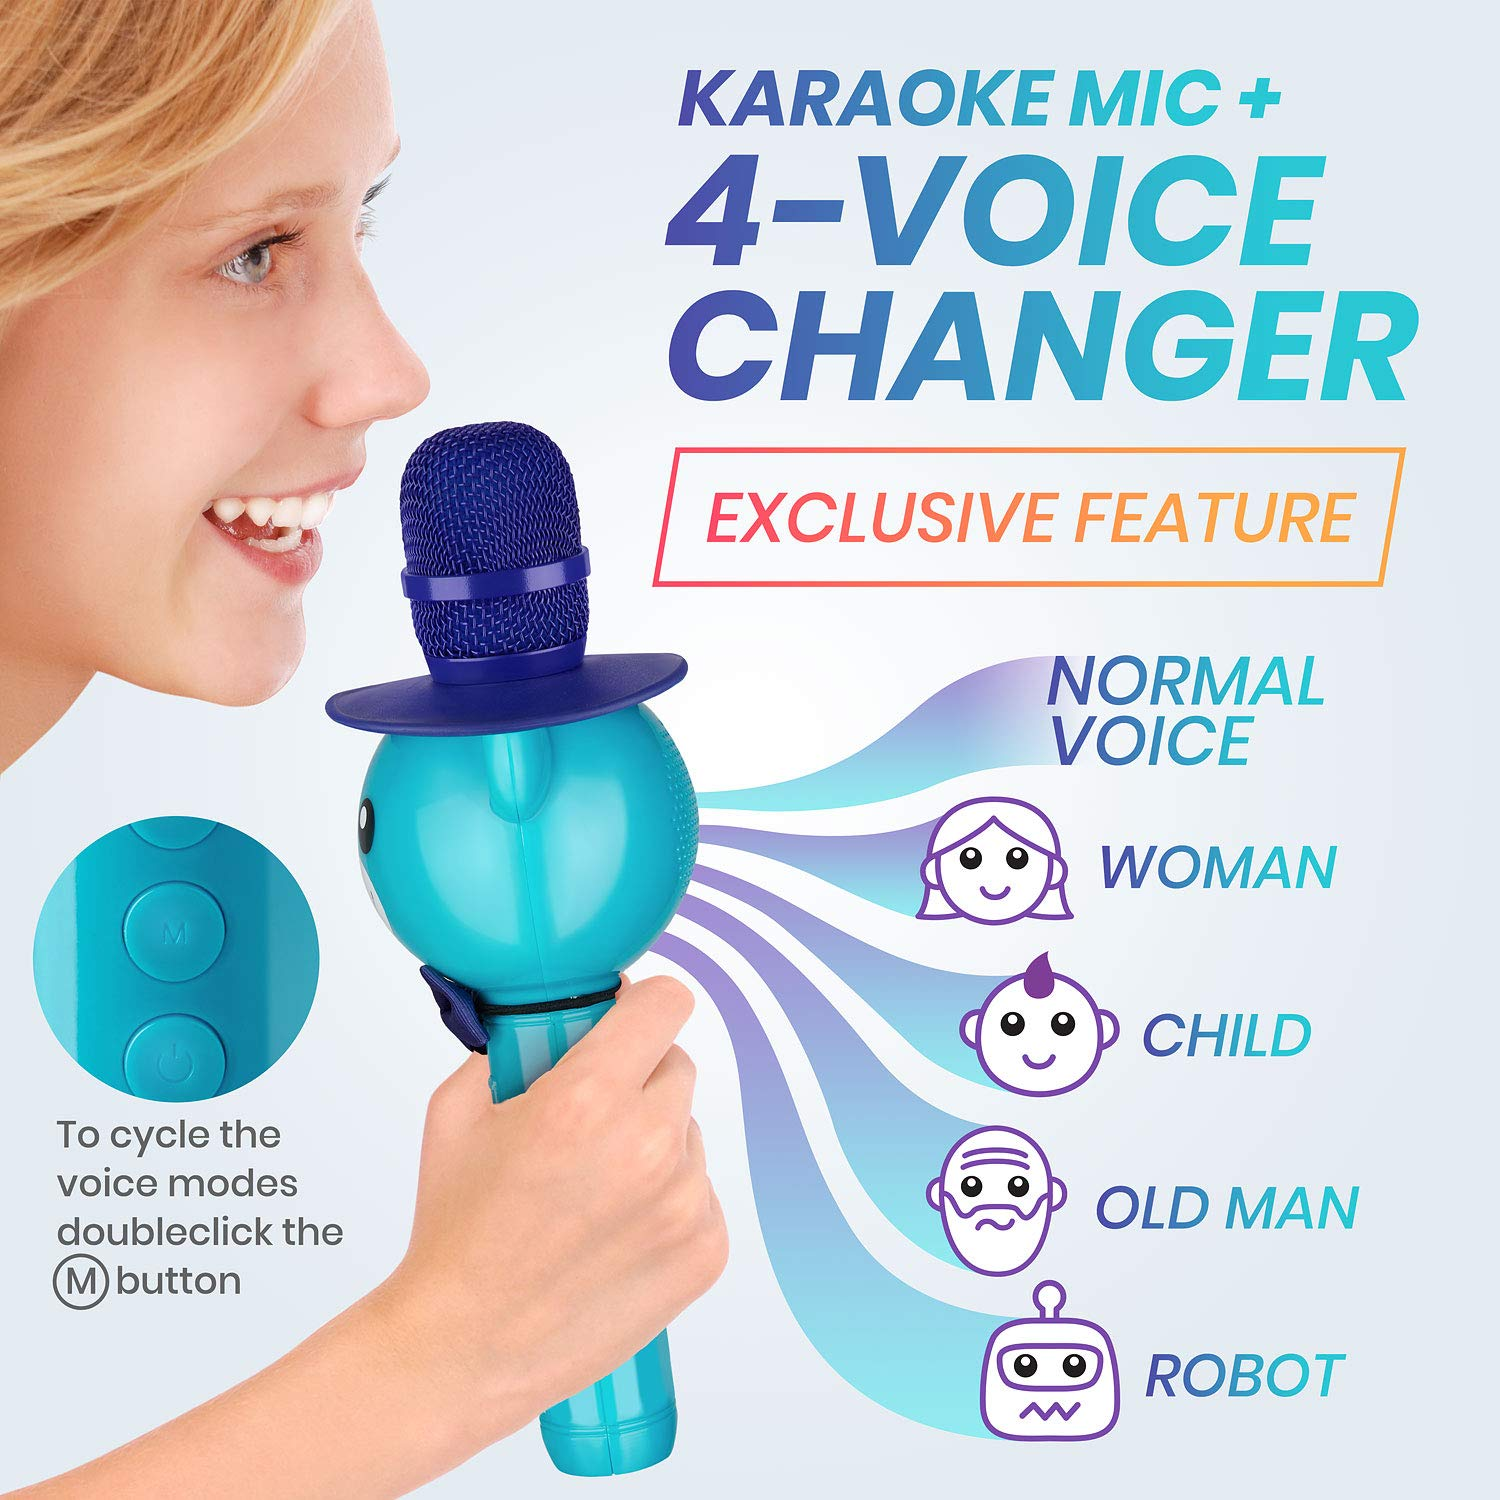 Wireless Karaoke Microphone for Kids - Bluetooth Mic Great for Solo Singing, KTV Parties, Magic Boys & Girls Christmas or Birthday Gifts - Portable Karaoke Machine for Kids Pop [Blue] by KaraoKing by KaraoKing (Image #2)